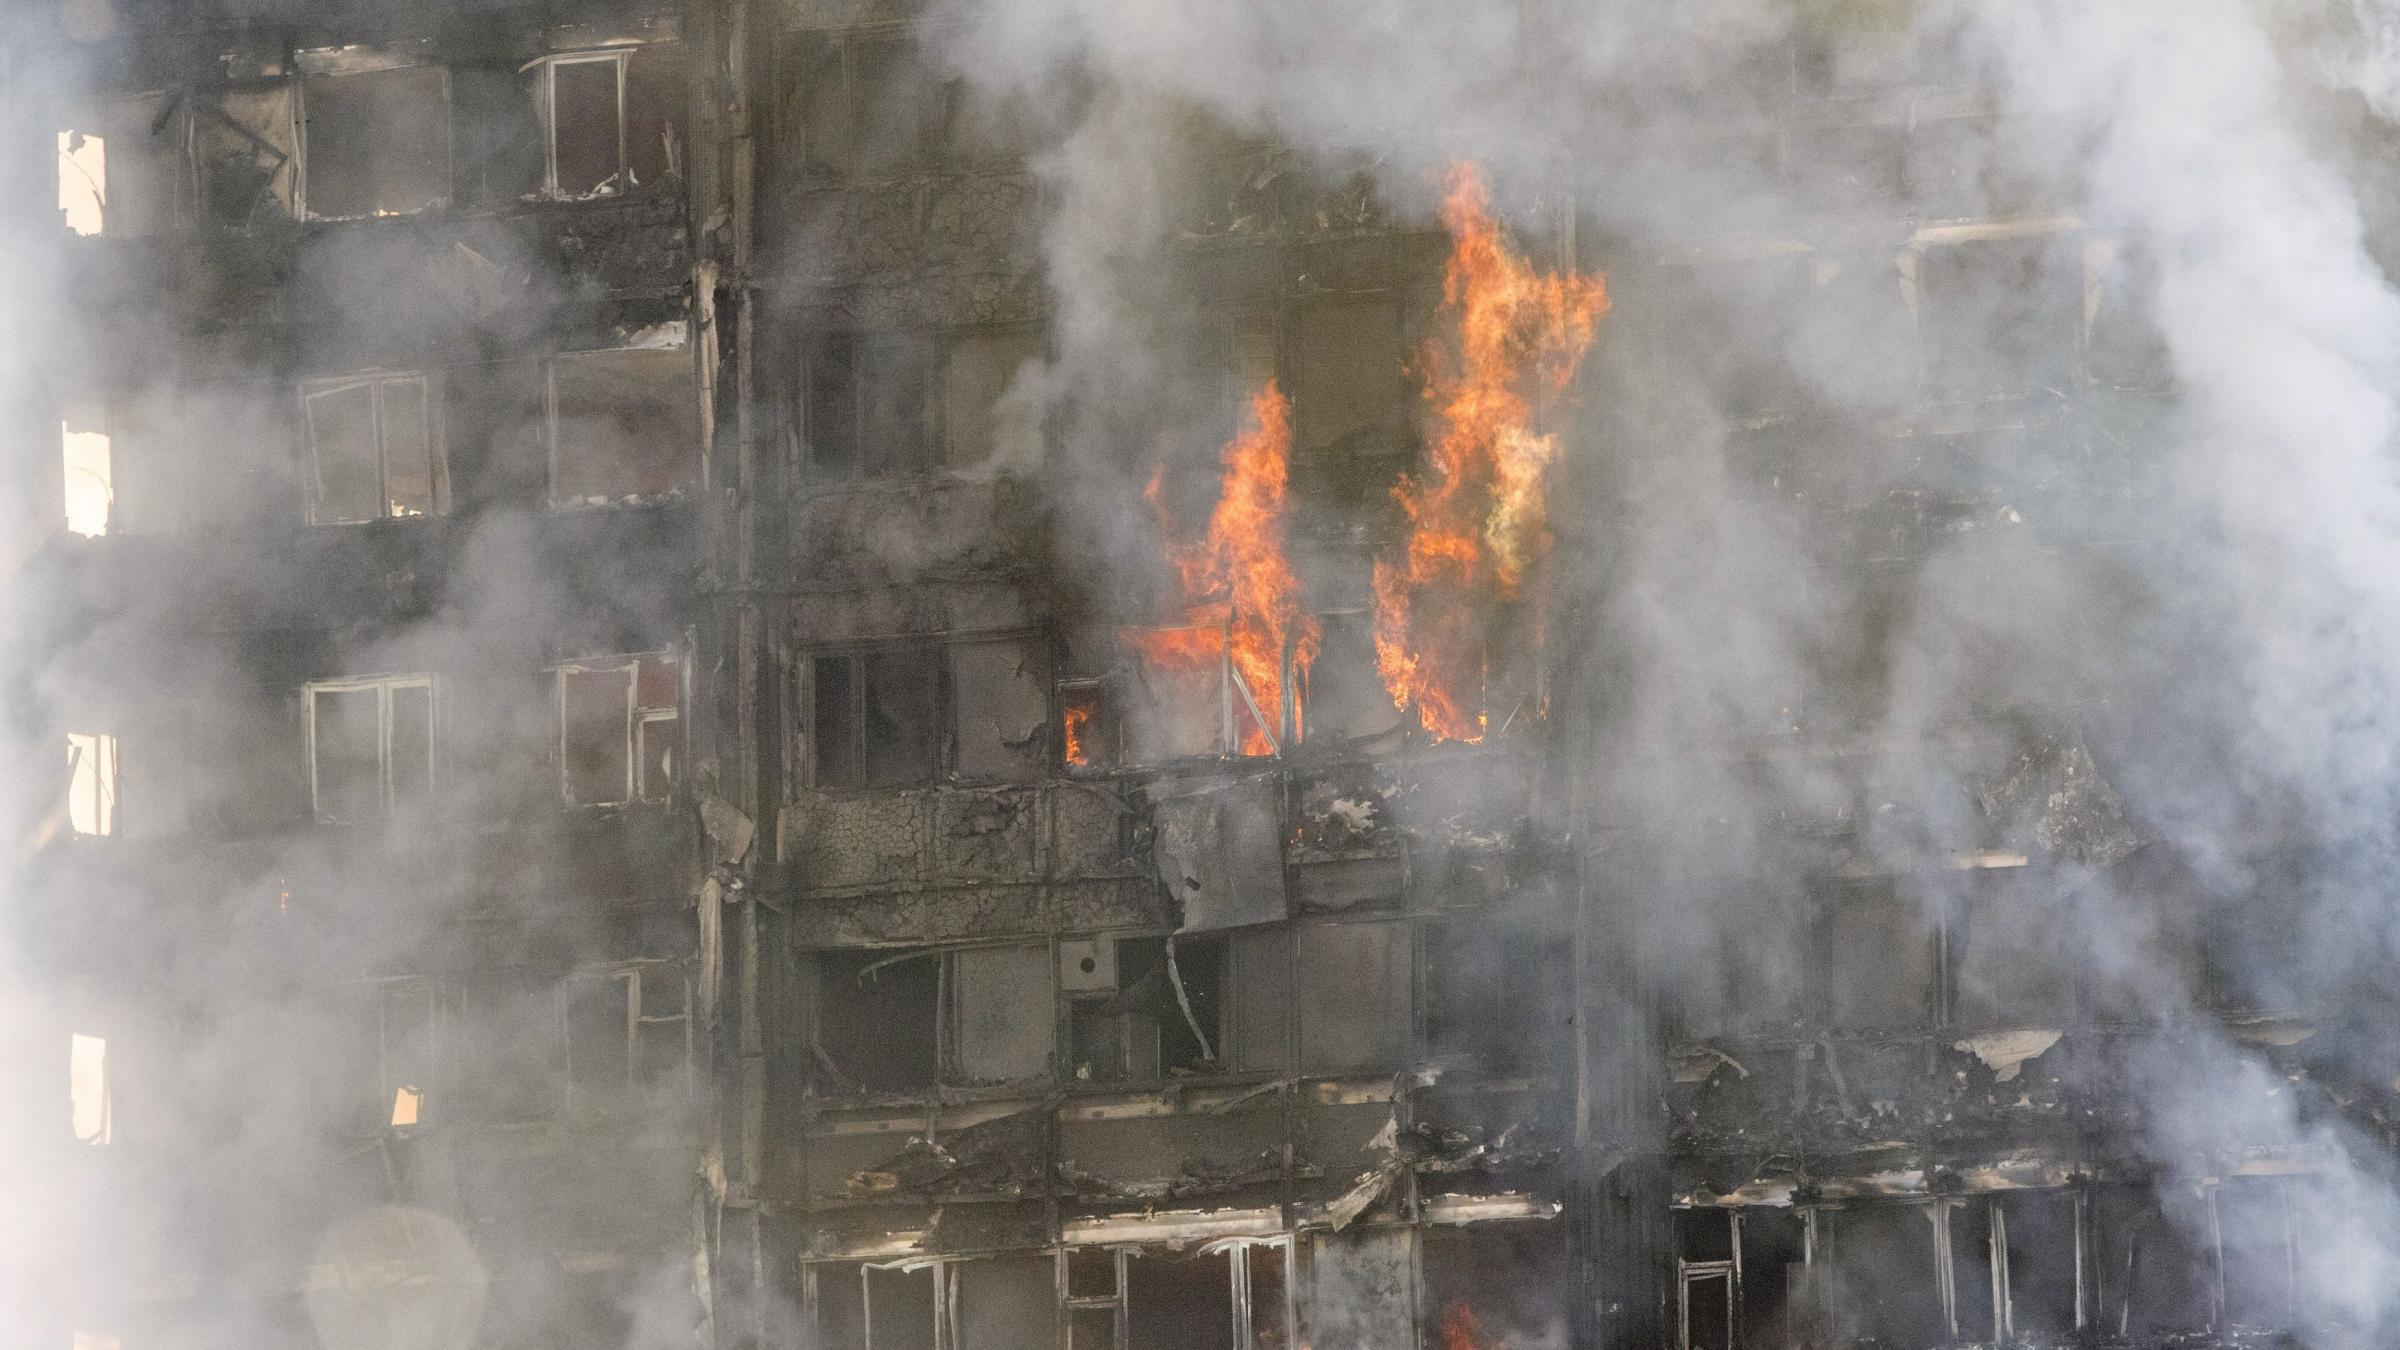 Huge fire engulfs west London tower block